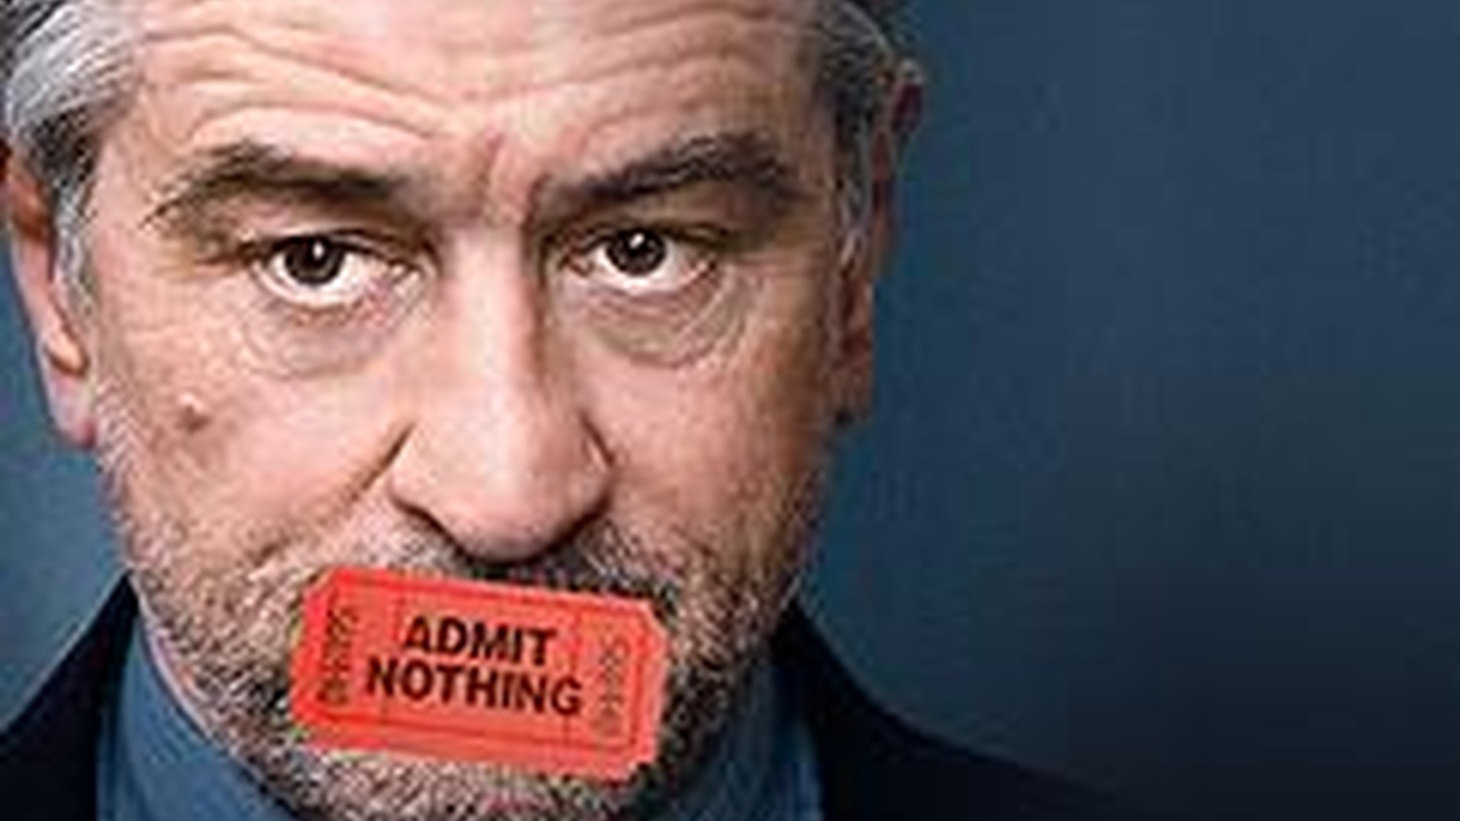 What Just Happened is the latest movie made about the world of movie making.  It's a very funny story centered around a producer, played by Robert Deniro, who is caught between out-of-control talent and the studio and between the love of his estranged wife and his obsession with his BlackBerry...